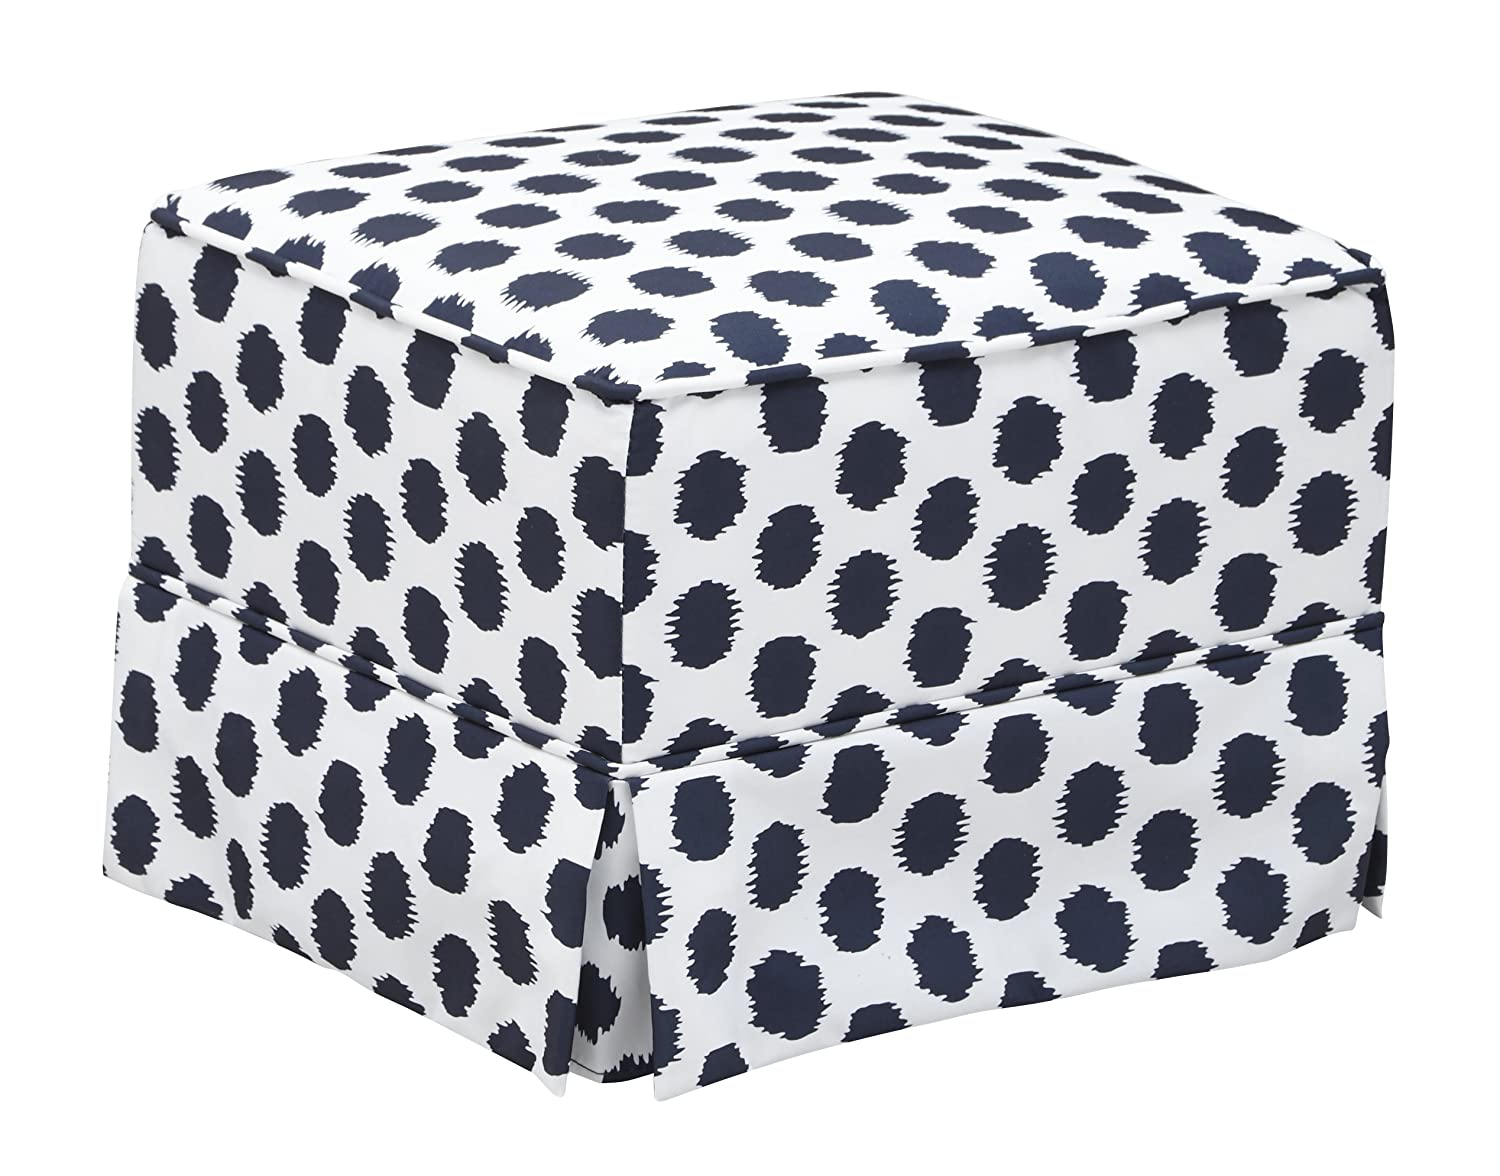 Storkcraft Polka Dot Upholstered Ottoman, White/Navy, Cleanable Upholstered Comfort Rocking Nursery Ottoman Stork Craft Manufacturing 06562-42V